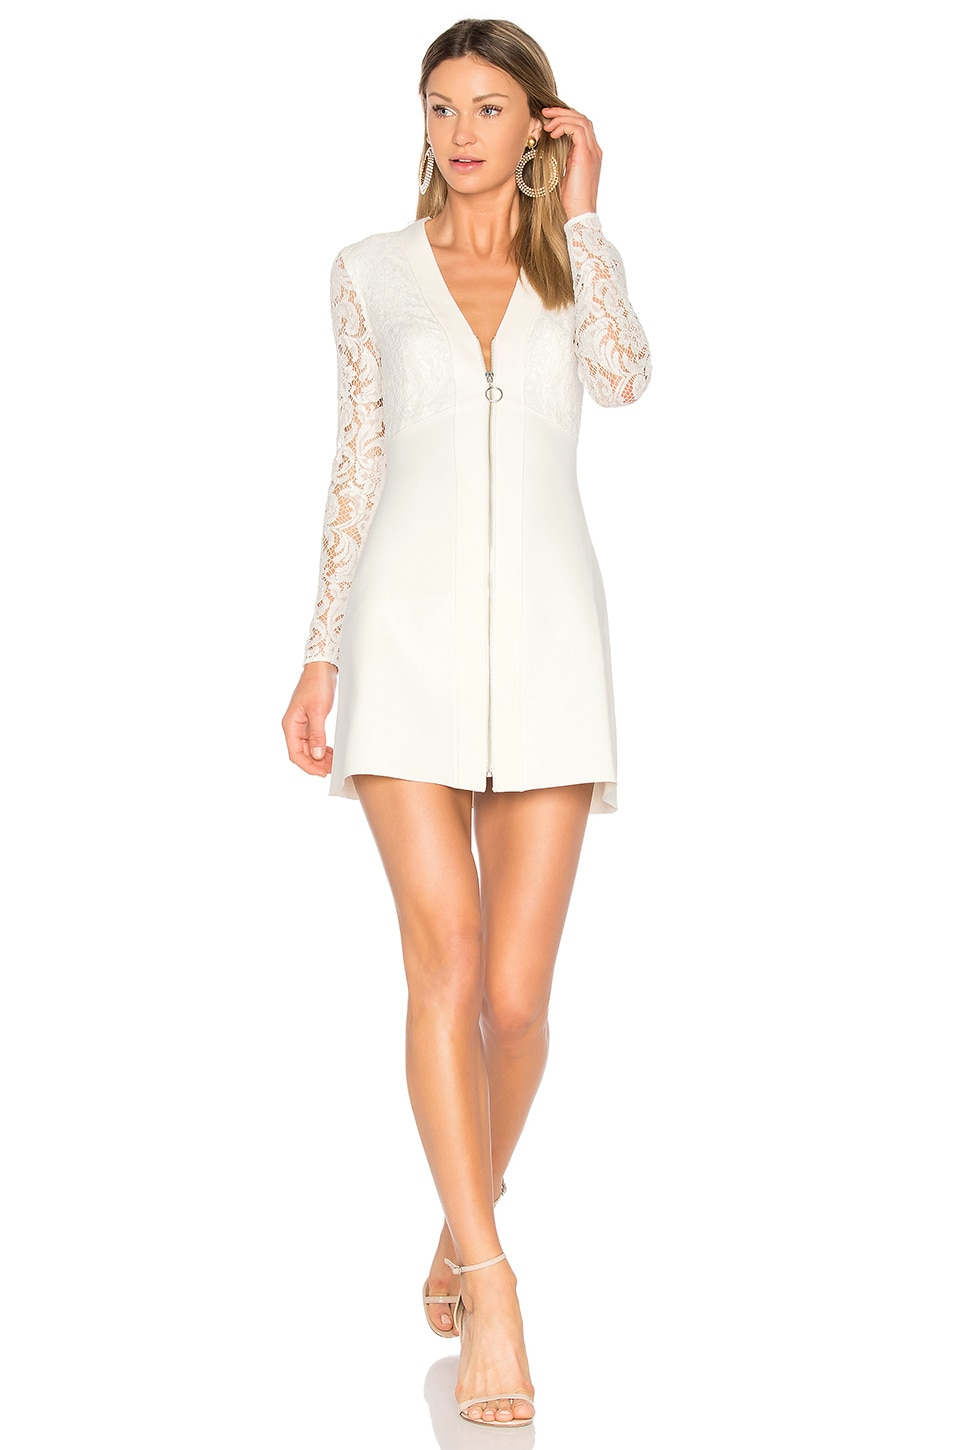 Lover Ivory Violet Mini Dress